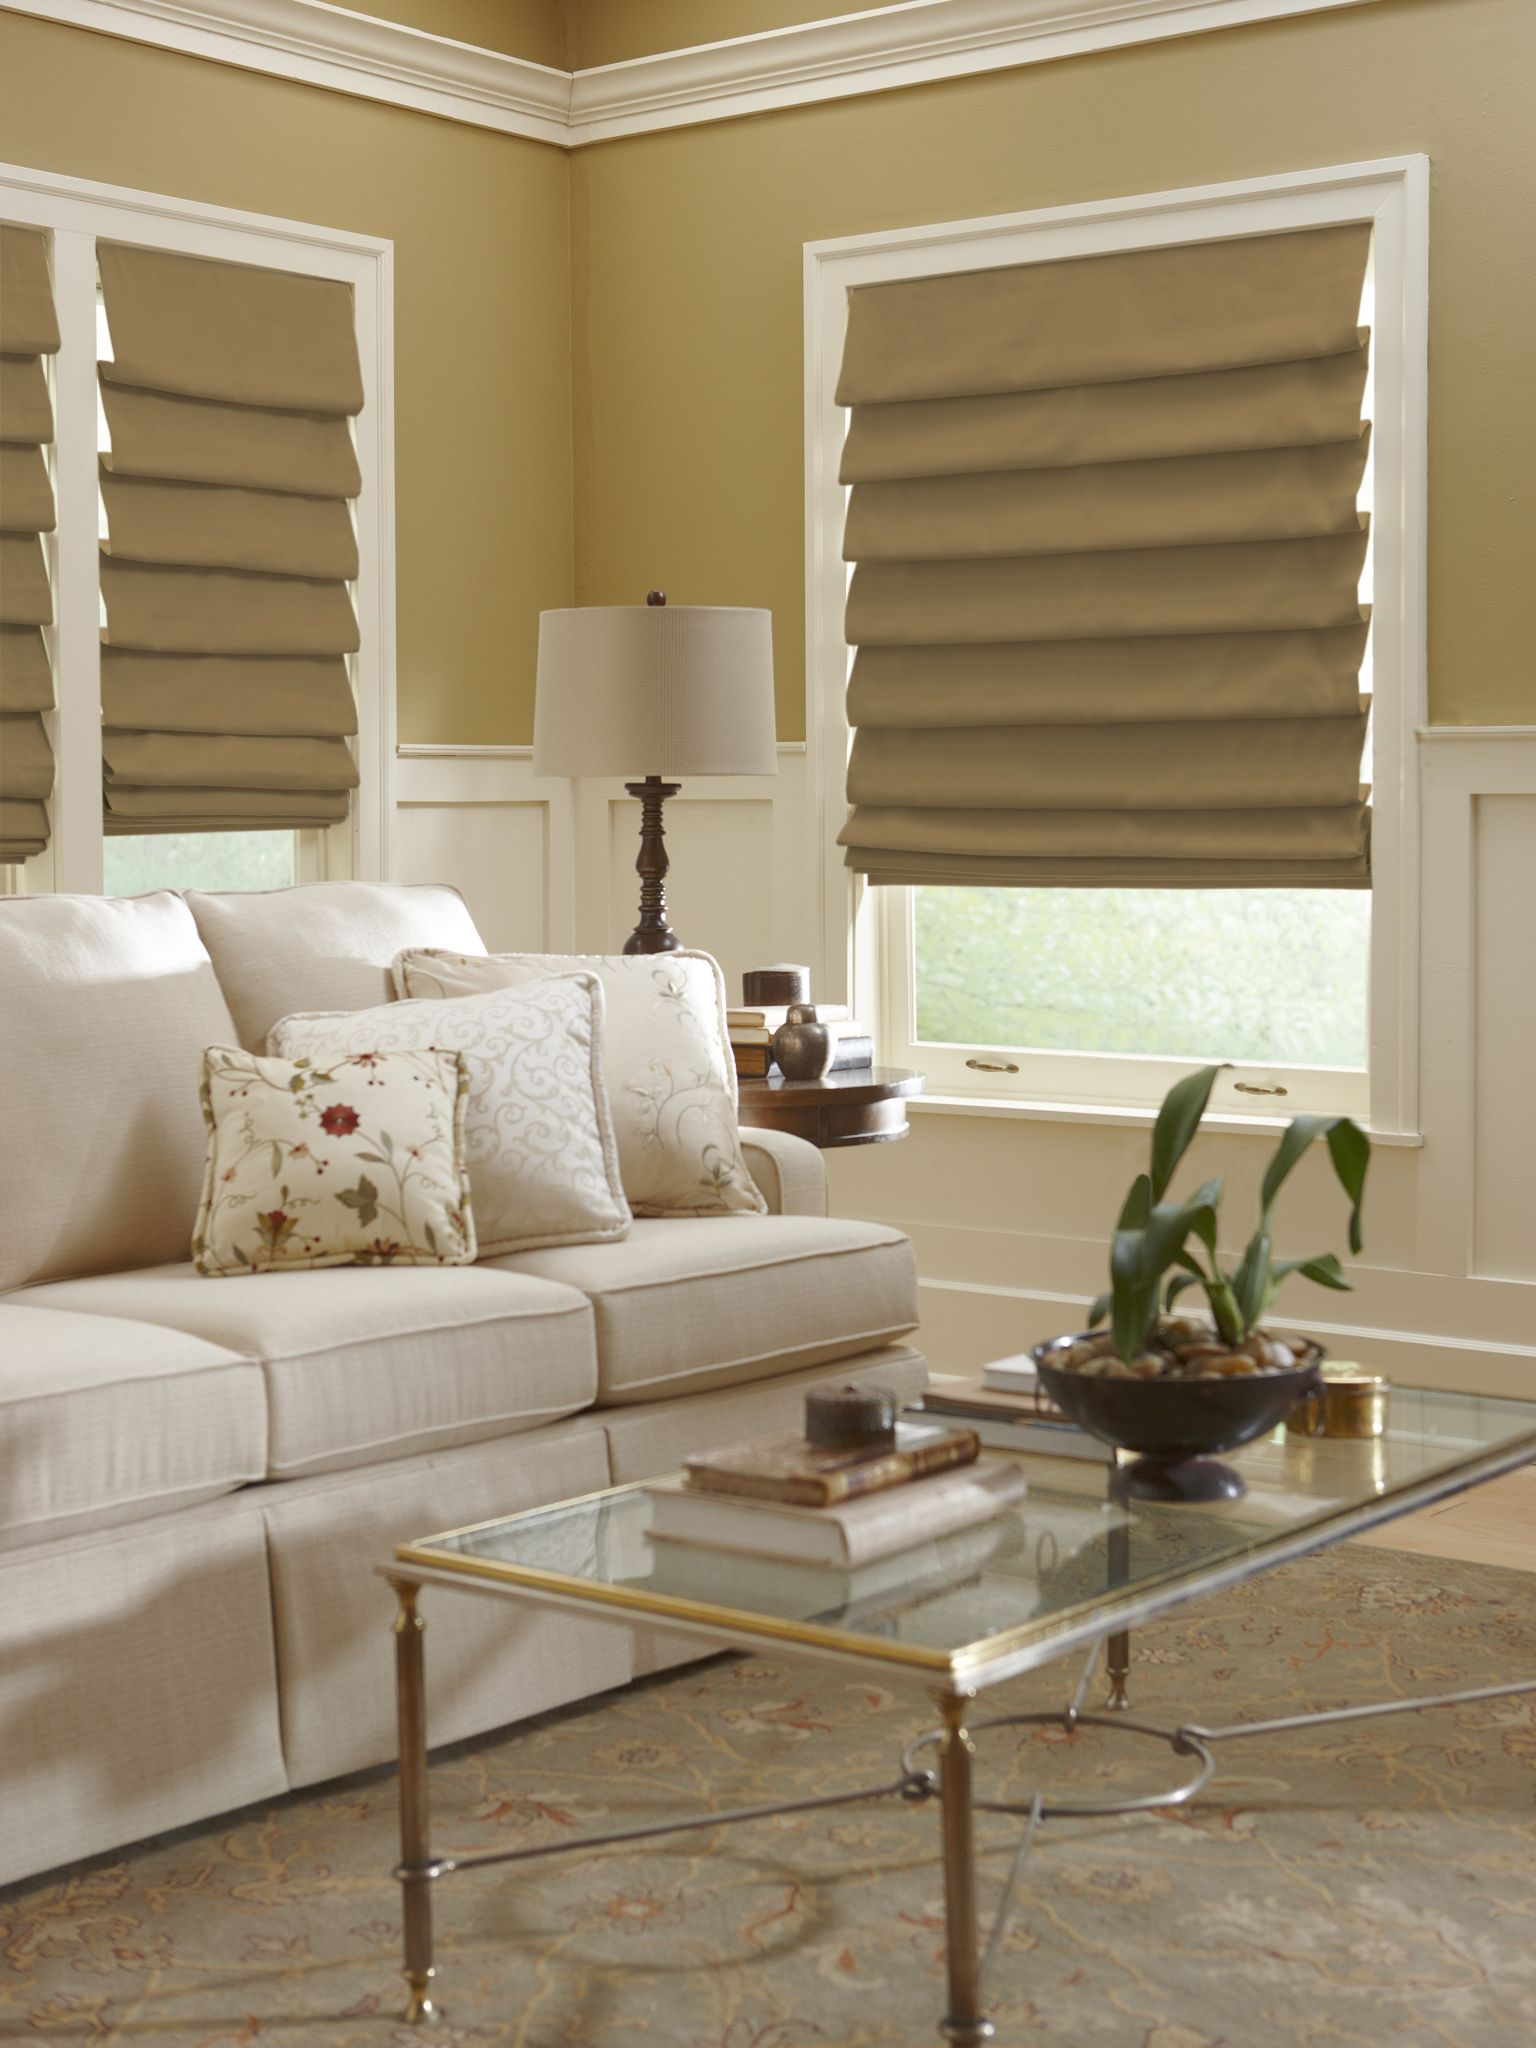 Hobbled Roman Soft Shade From Horizons Horizonshades Com